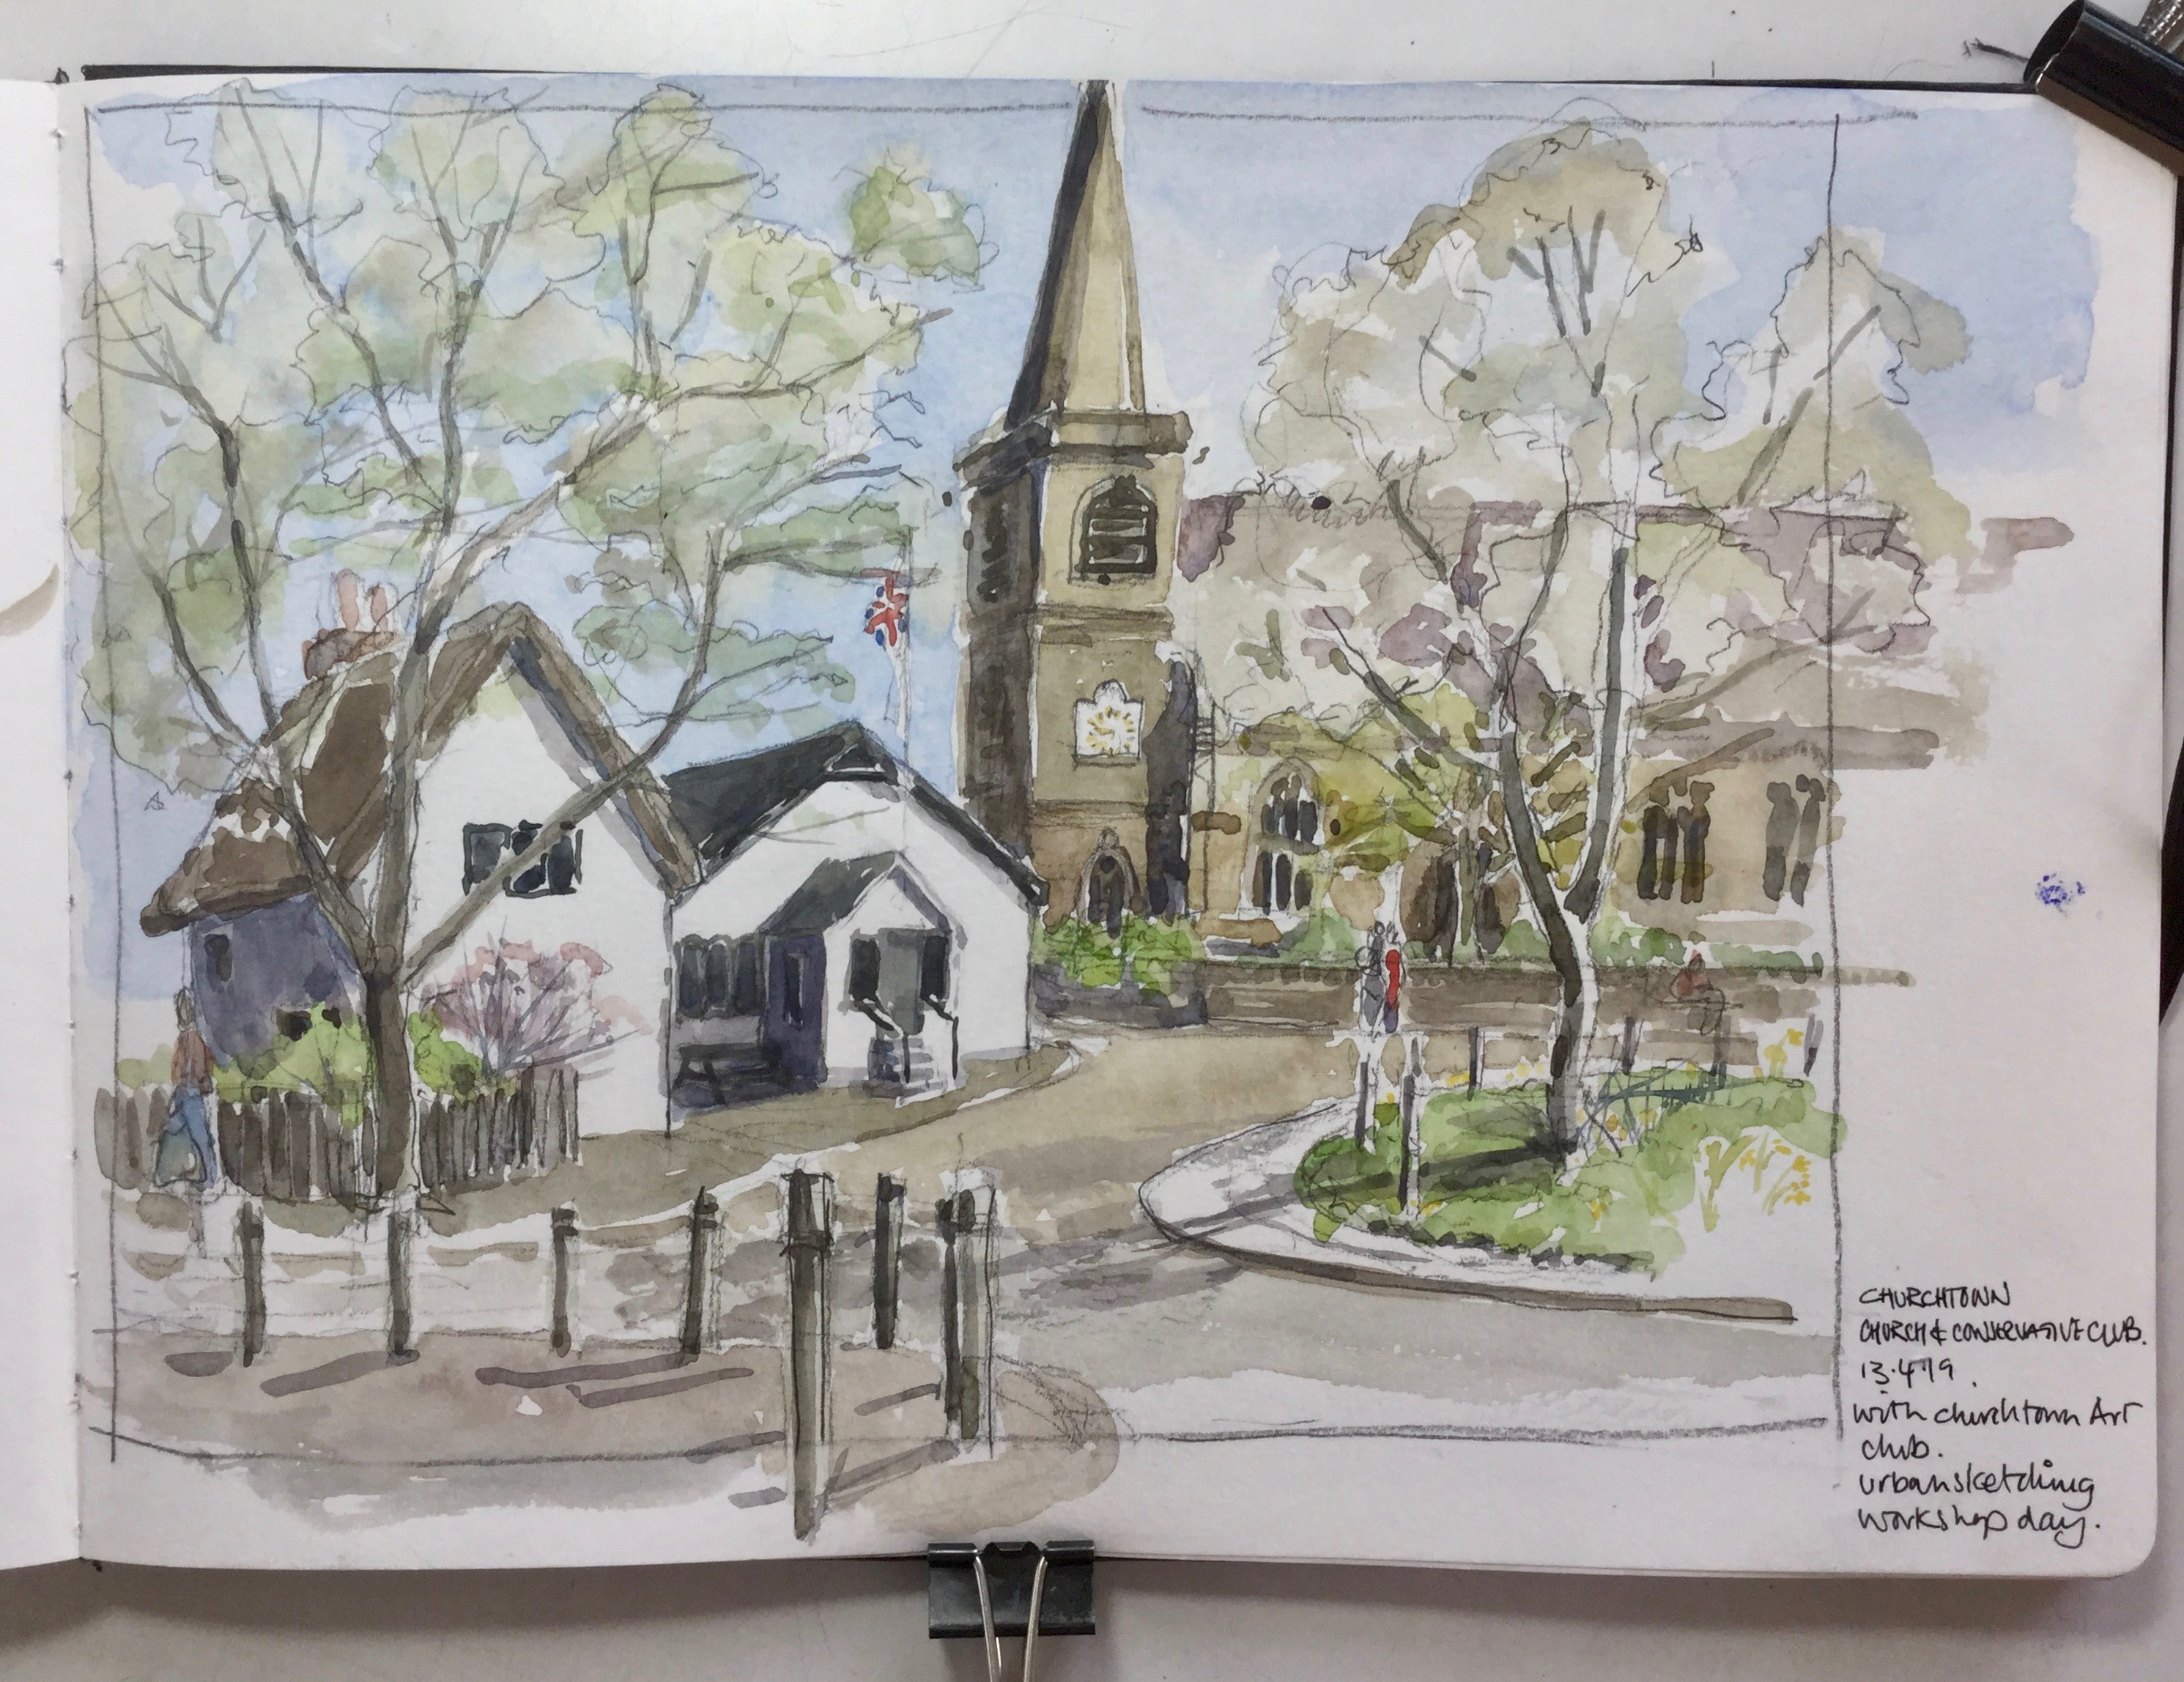 Sketch of Churchtown, Southport